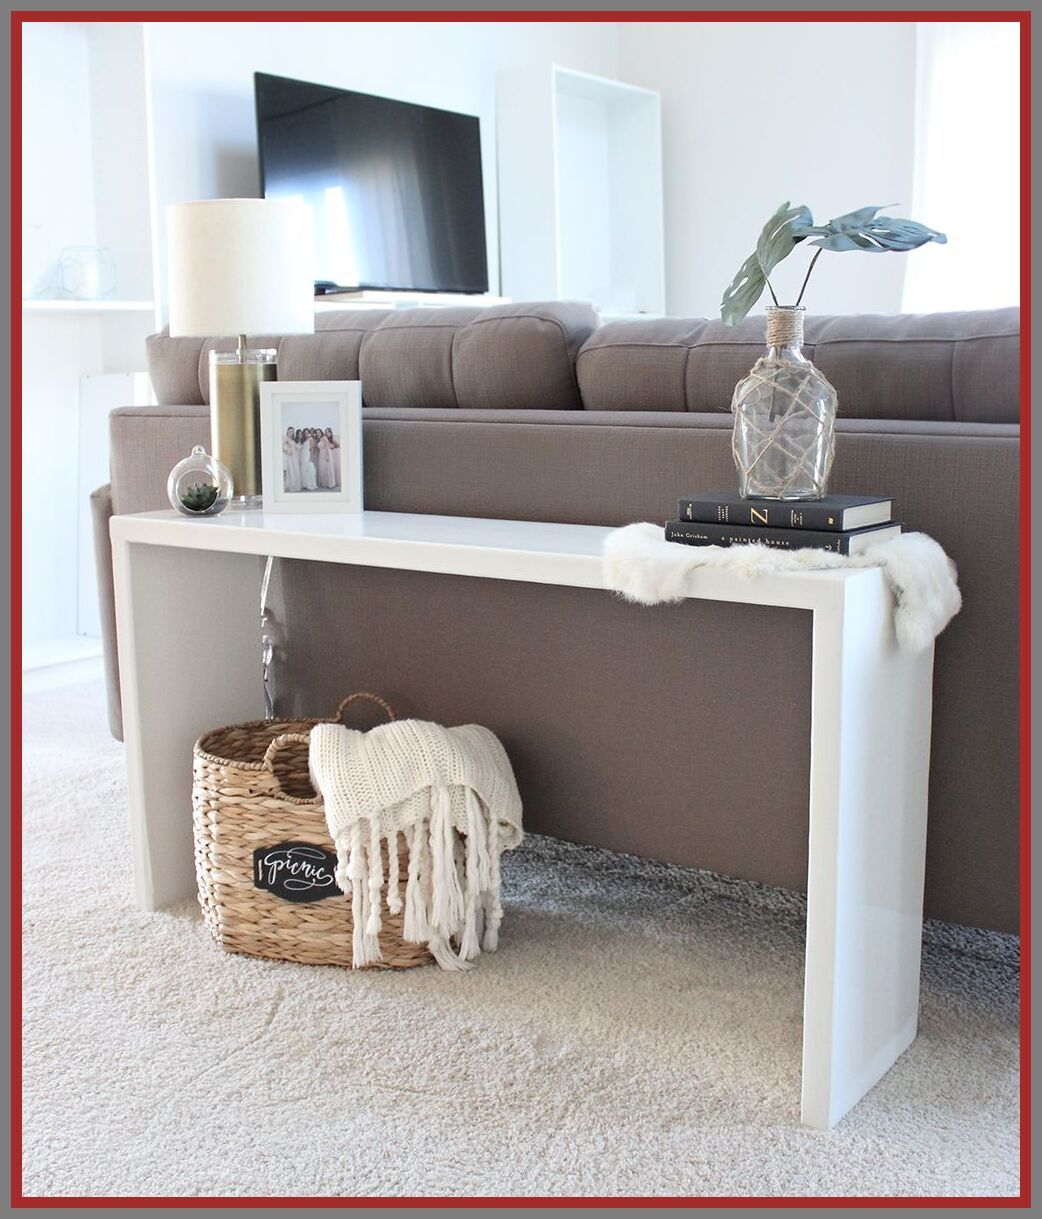 46 Reference Of Sofa Back Table Decorating Ideas In 2020 Console Table Behind Sofa Diy Sofa Table Sofa Table Decor